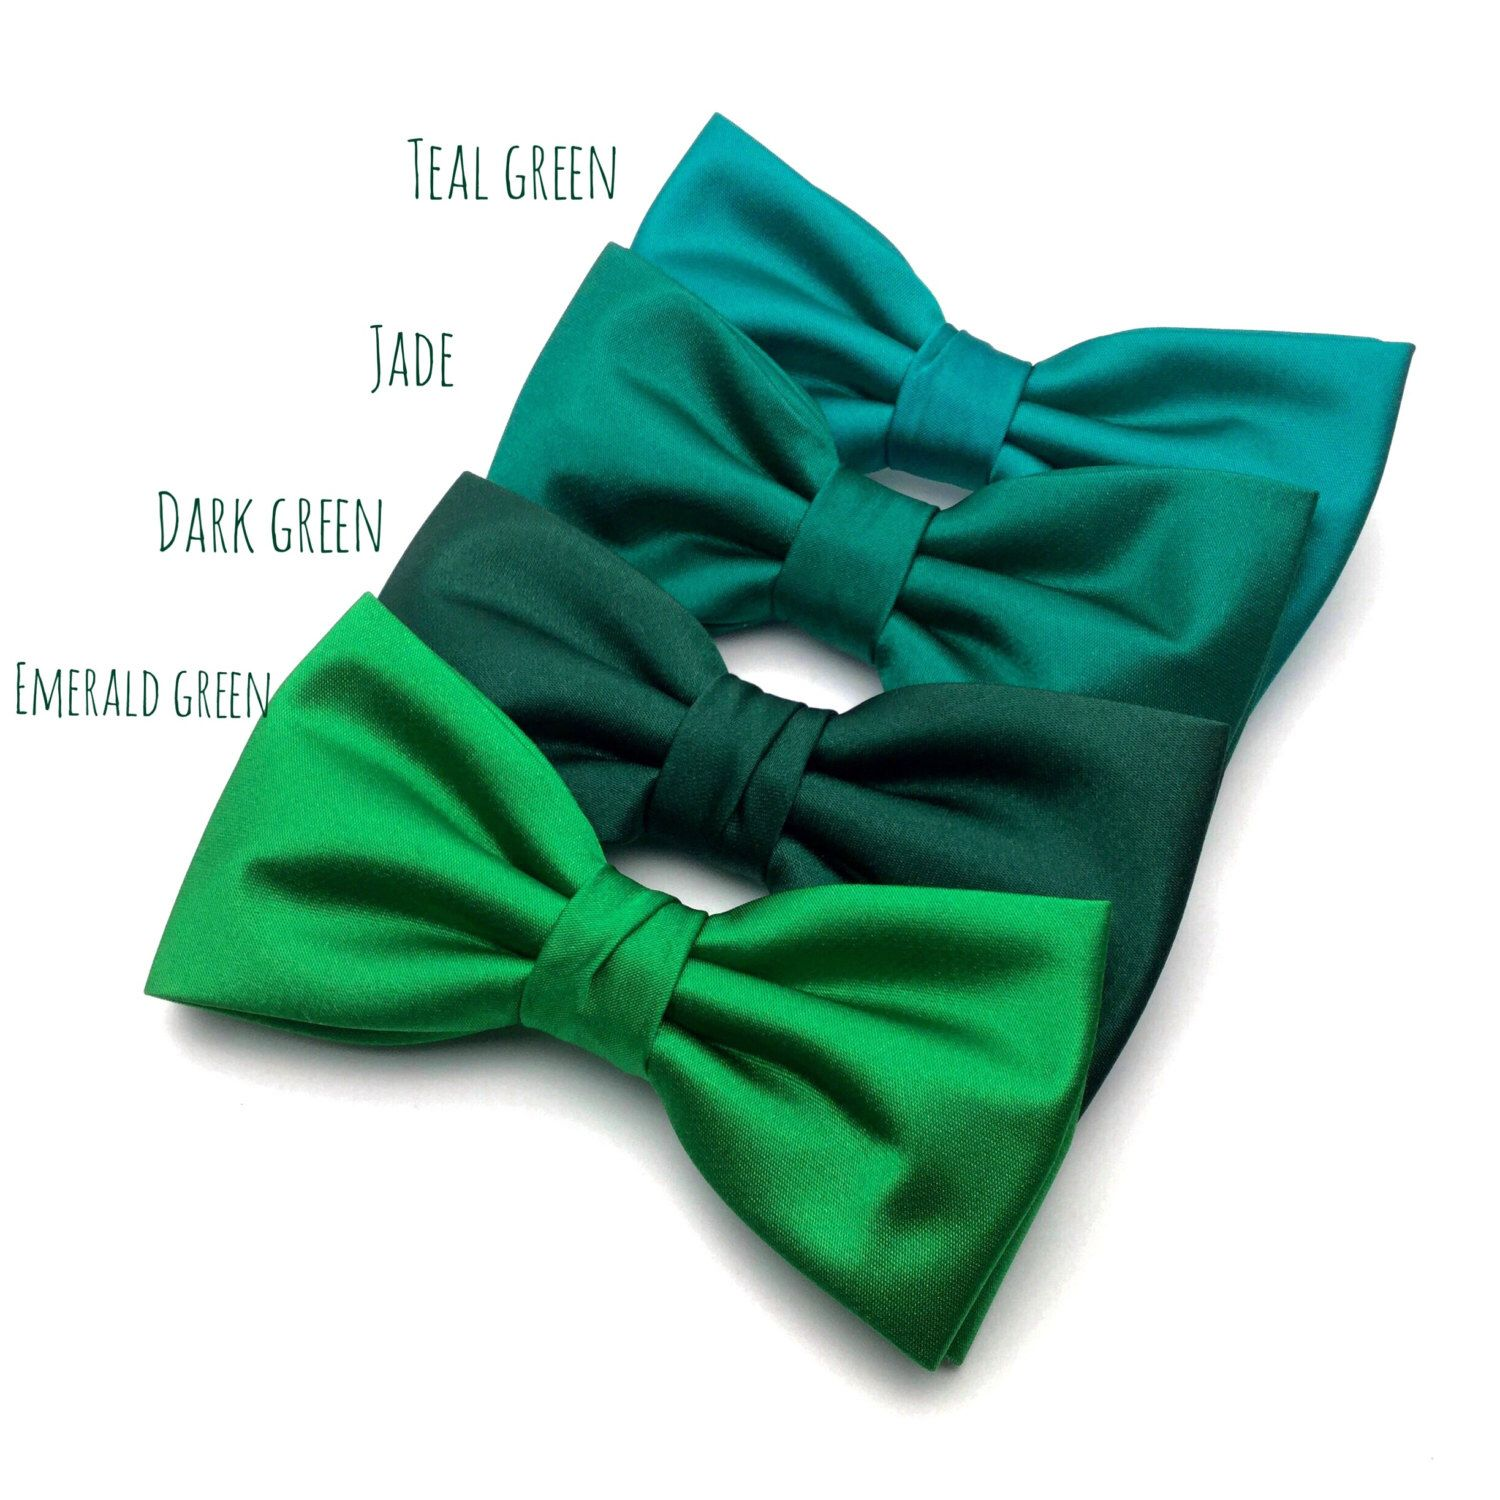 fe09c9307bf7 Wedding Bow Tie | Mens Satin Bow Tie | Solid Green Bow Tie | Teal Green